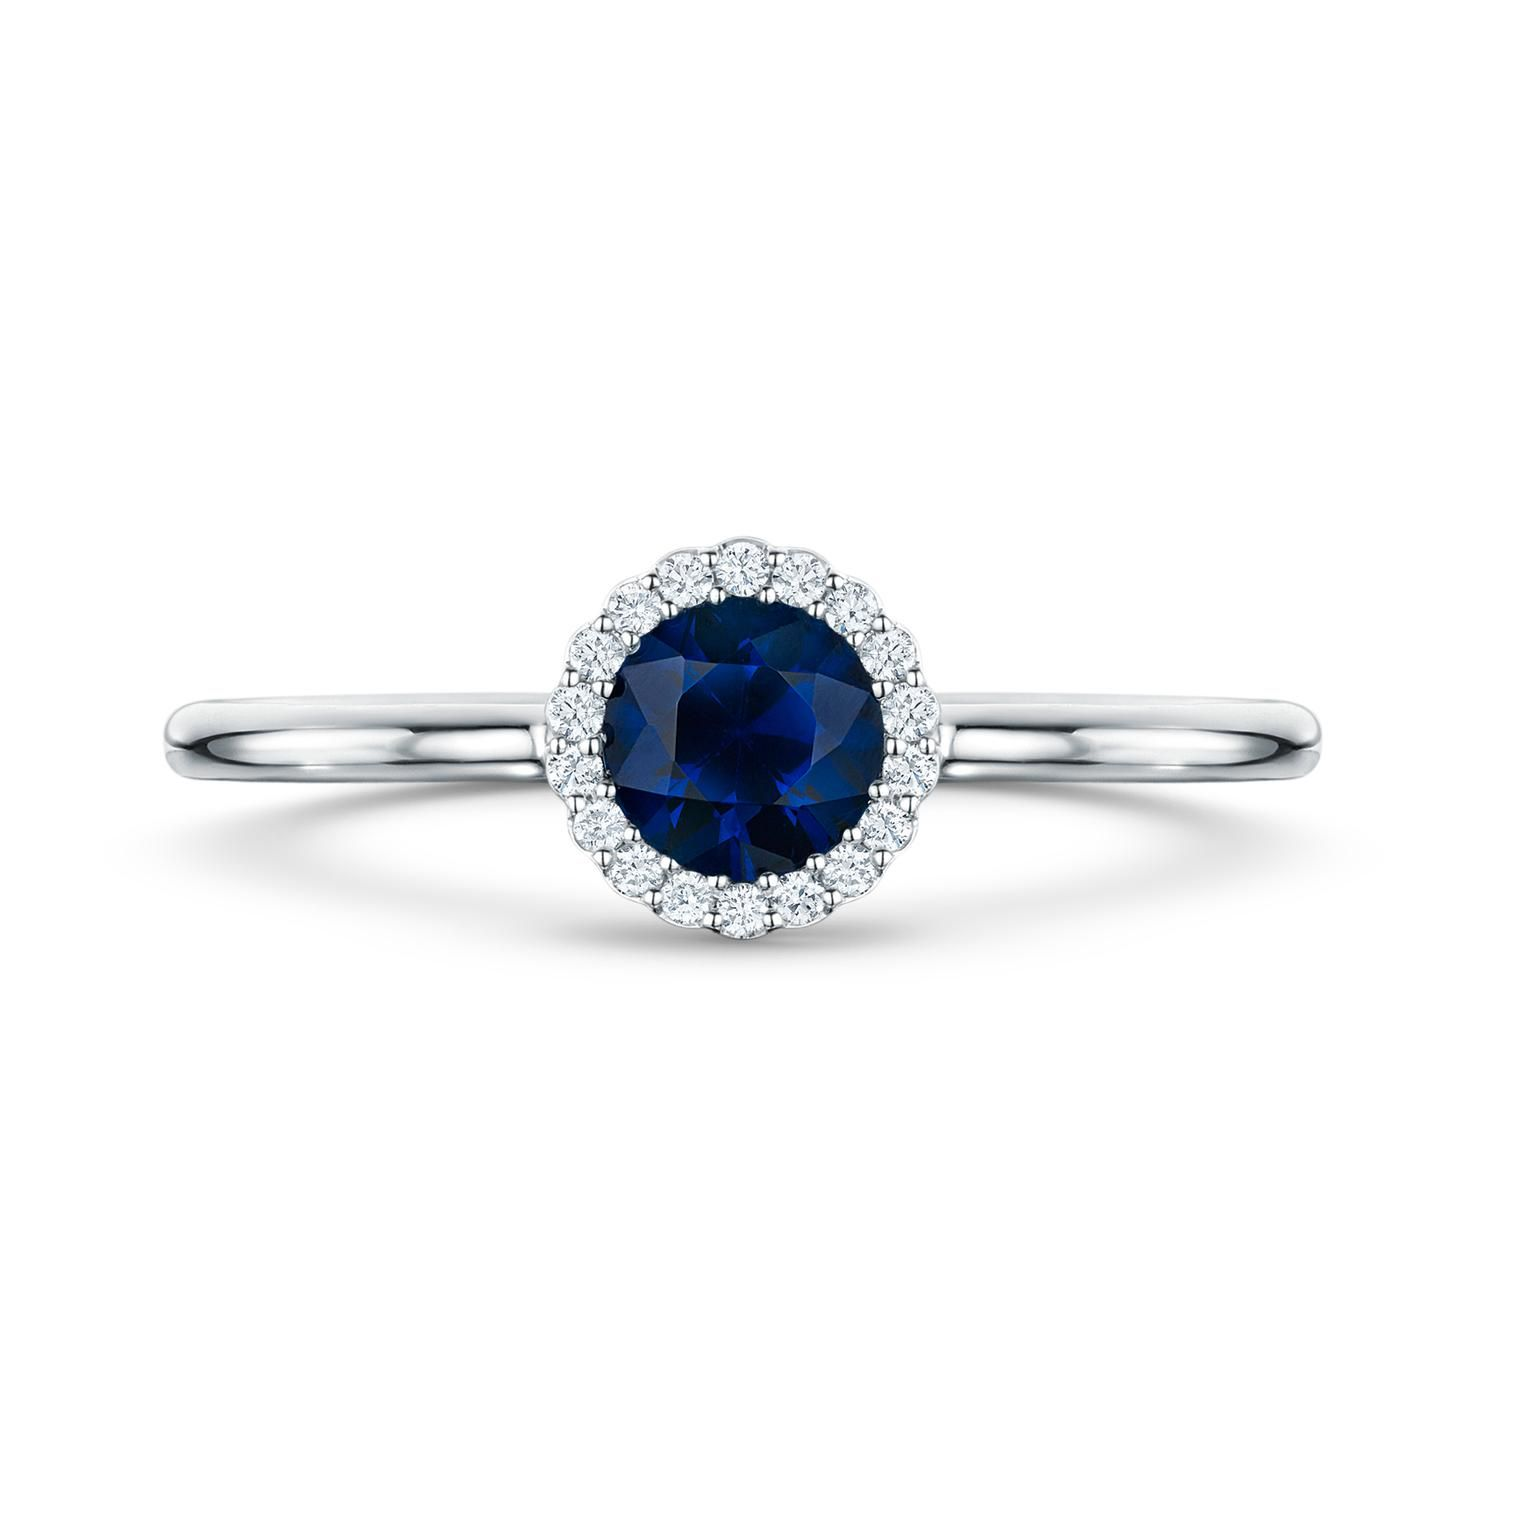 diamond rings fresh s jewellry and of blue engagement inspirational dark ring graded website rare